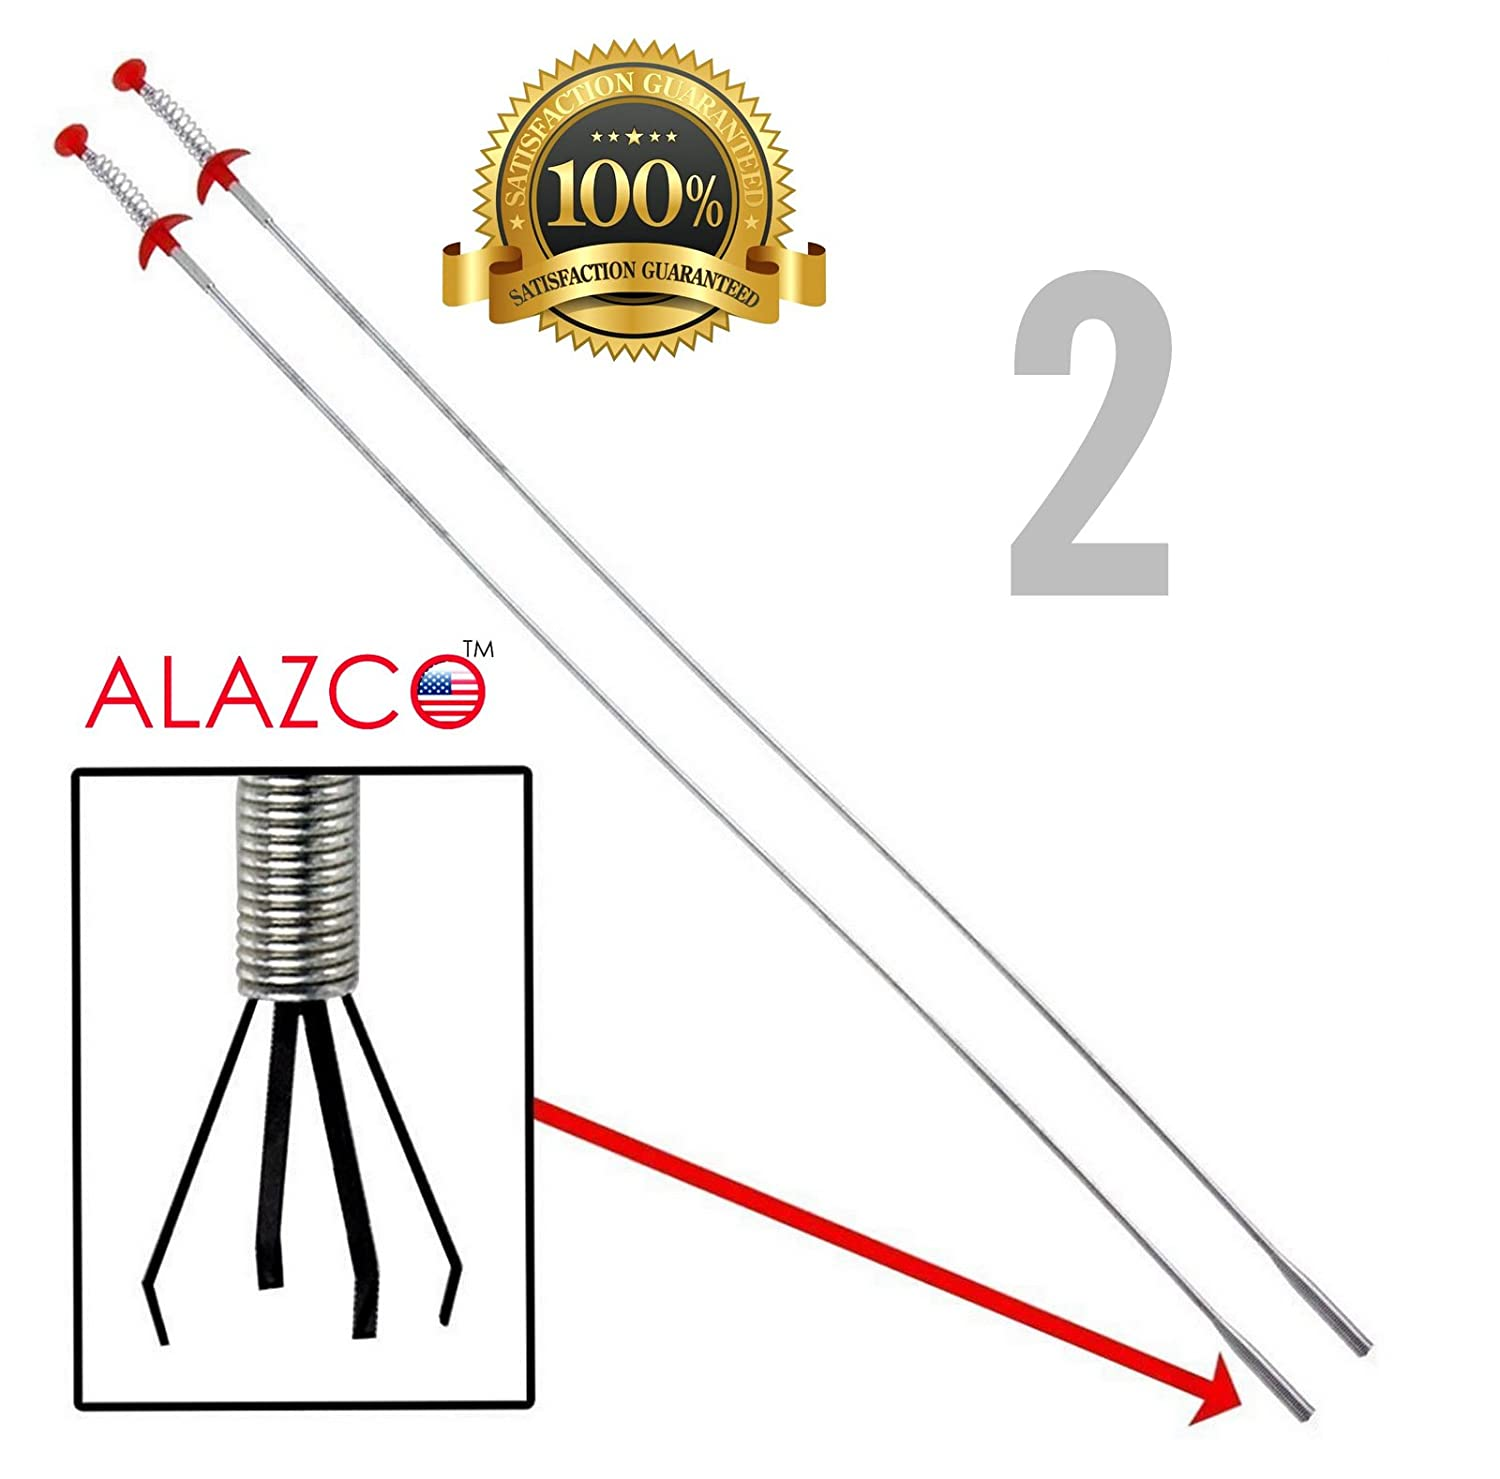 "2 ALAZCO 36"" Extra Long Flexible Grabber Pickup Tool Retractable Claw Retriever Stick, Snake & Cable Aid - Push Grab & Pick Up - Drain Auger Unclog Hair from Sink Drain Toilet Clean Dryer Vent"